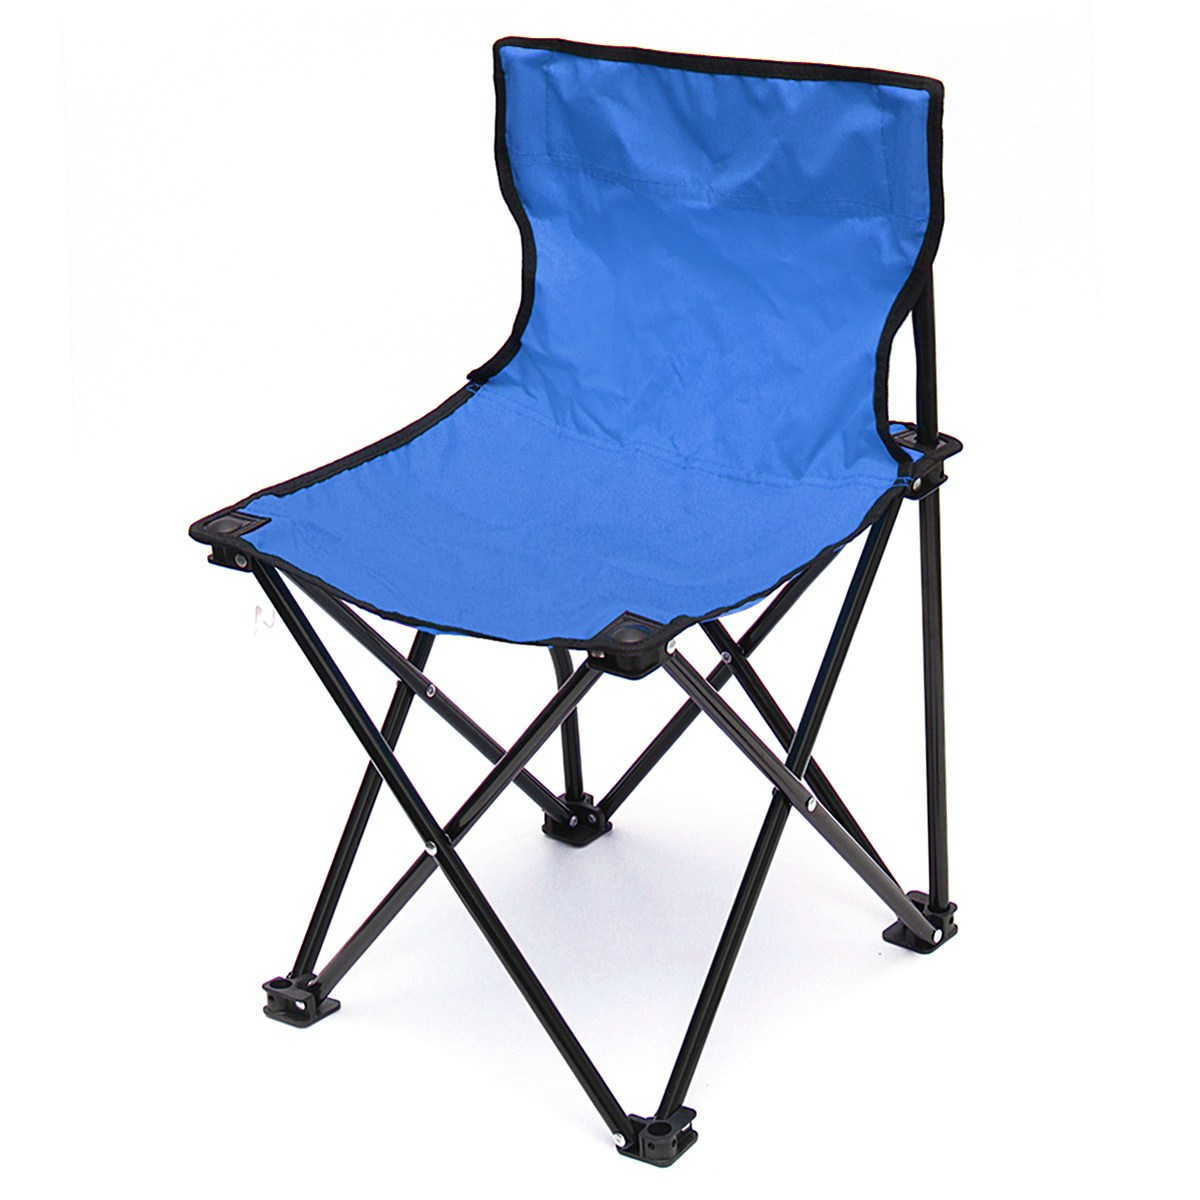 56x34x32cm Folding Chair Seat Oxford cloth Portable Foldable Stool for Camping Hiking Fishing Beach Garden Picnic Outdoor Tools 1pc outdoor camping tripod folding stool chair fishing foldable portable fishing mate chair height 30cm folding waterproof 45